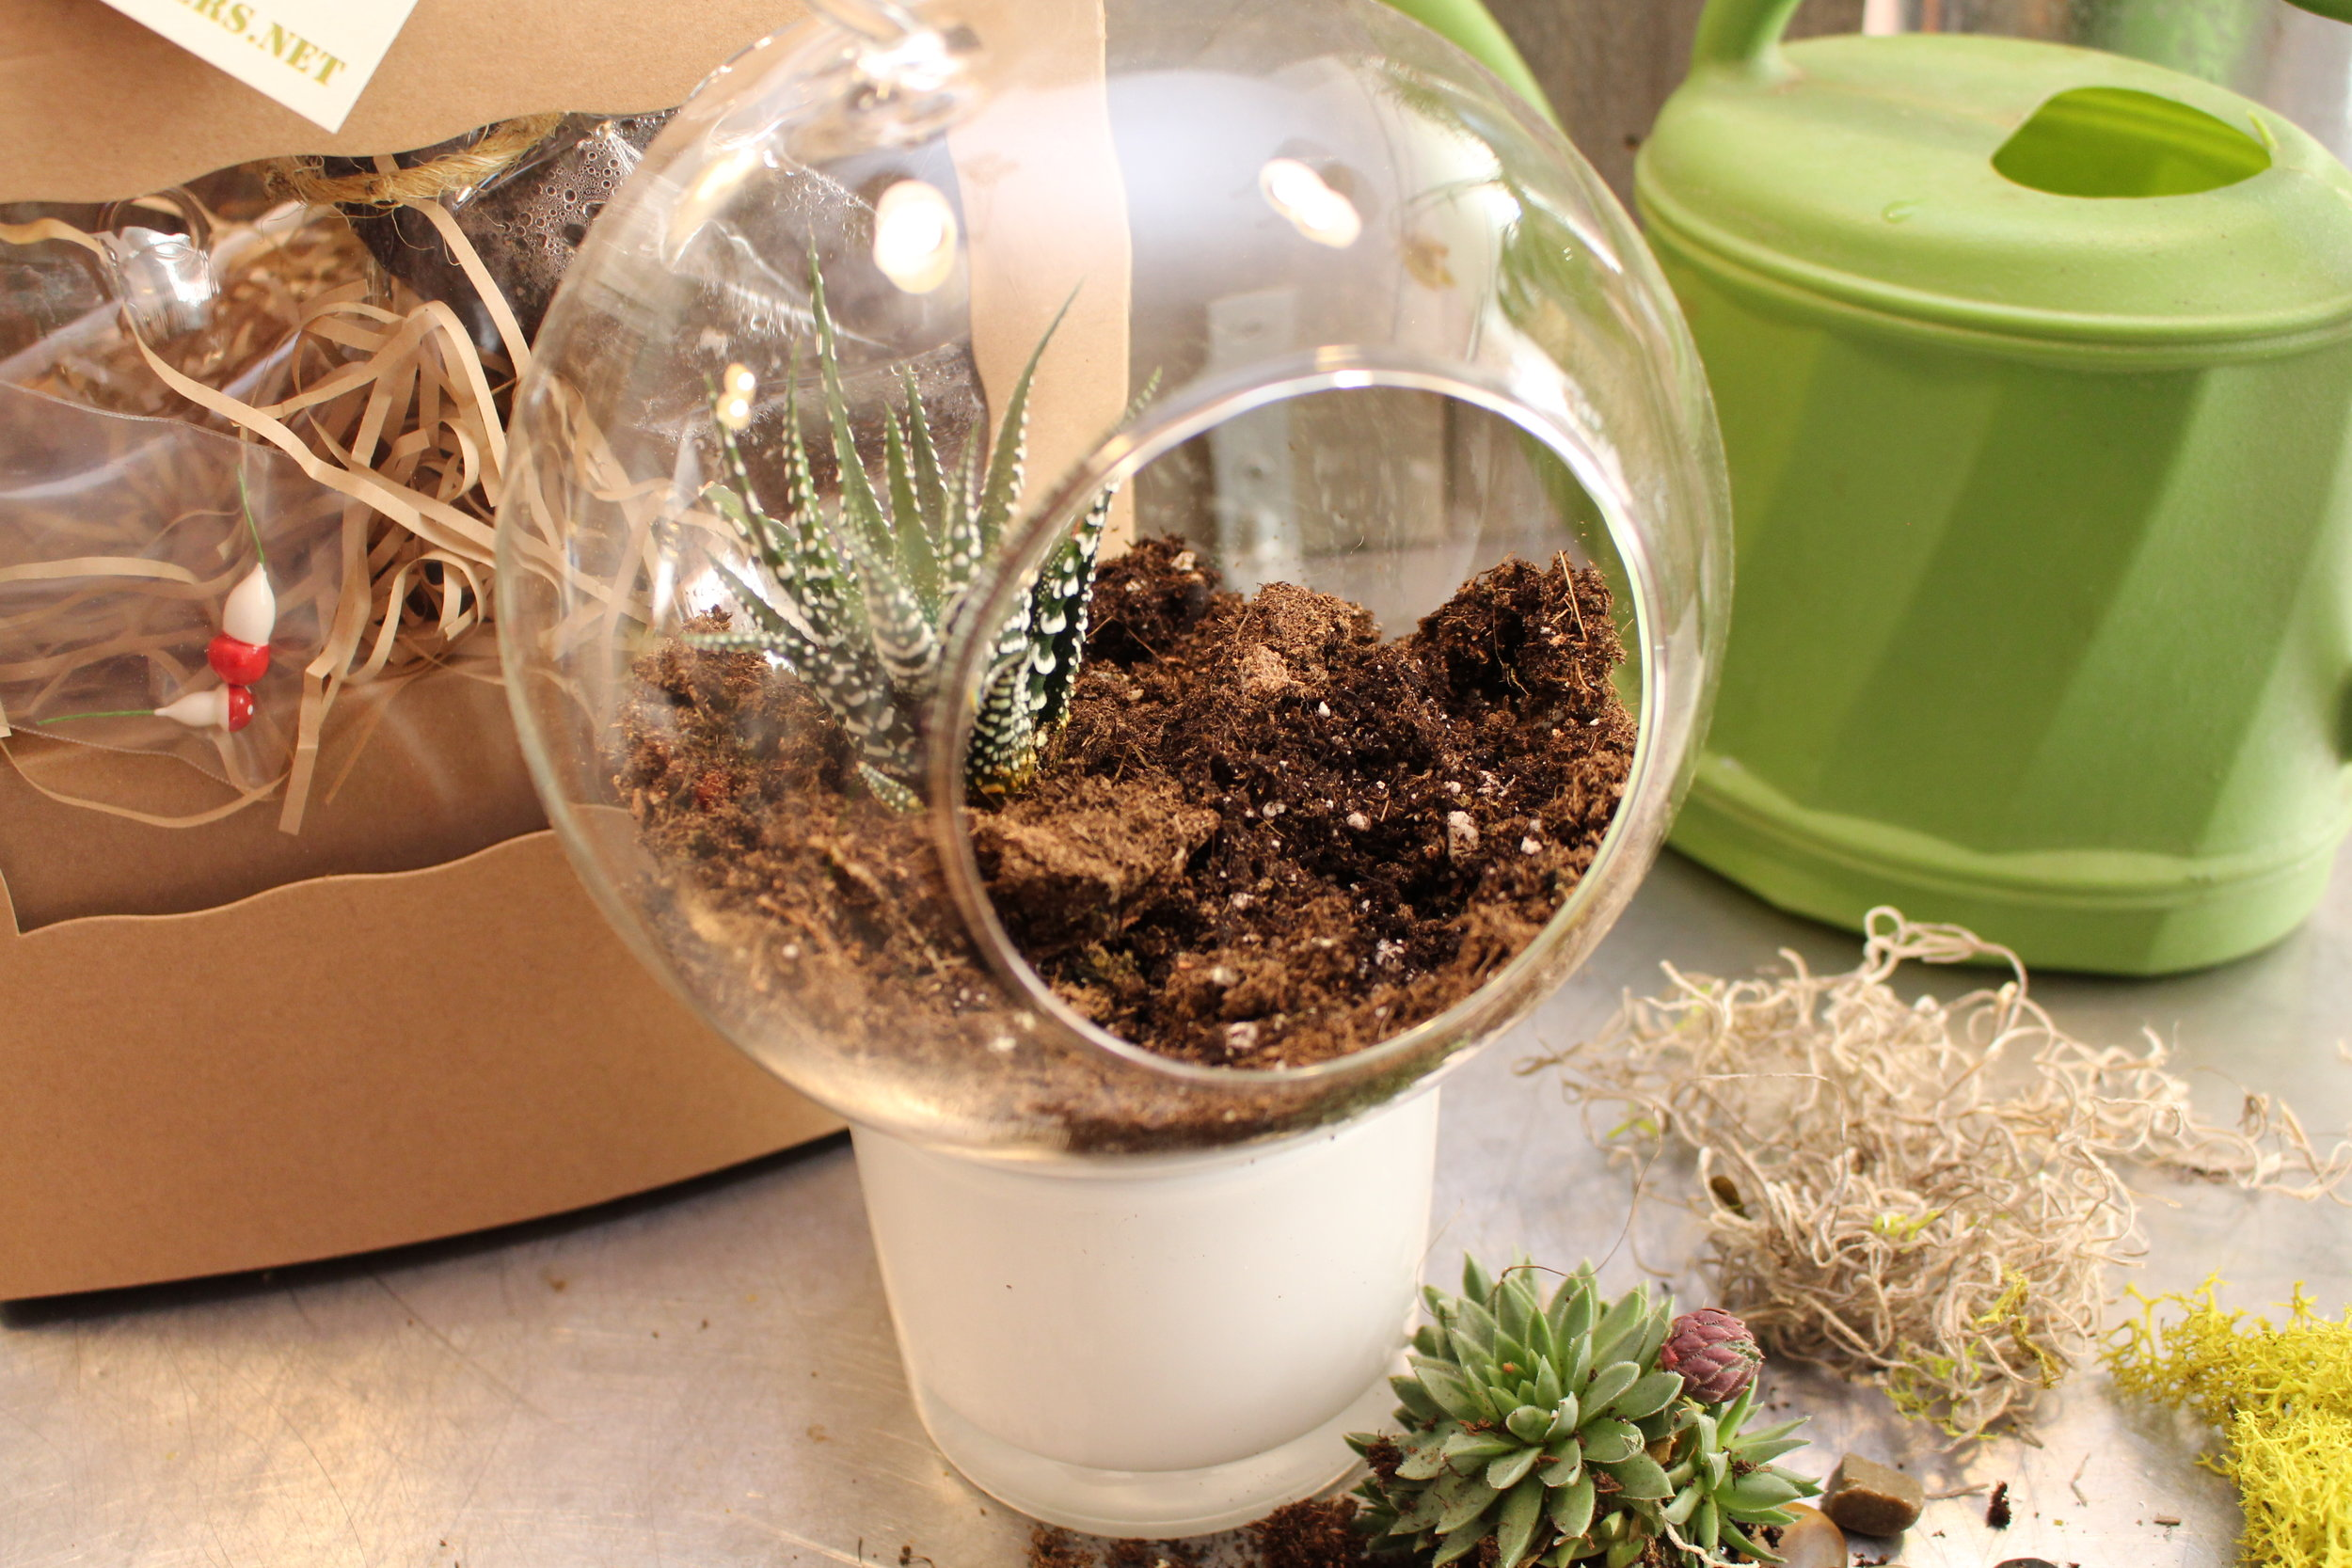 Shake off the extra soil from your succulents roots and carefully nestle them into your soil.